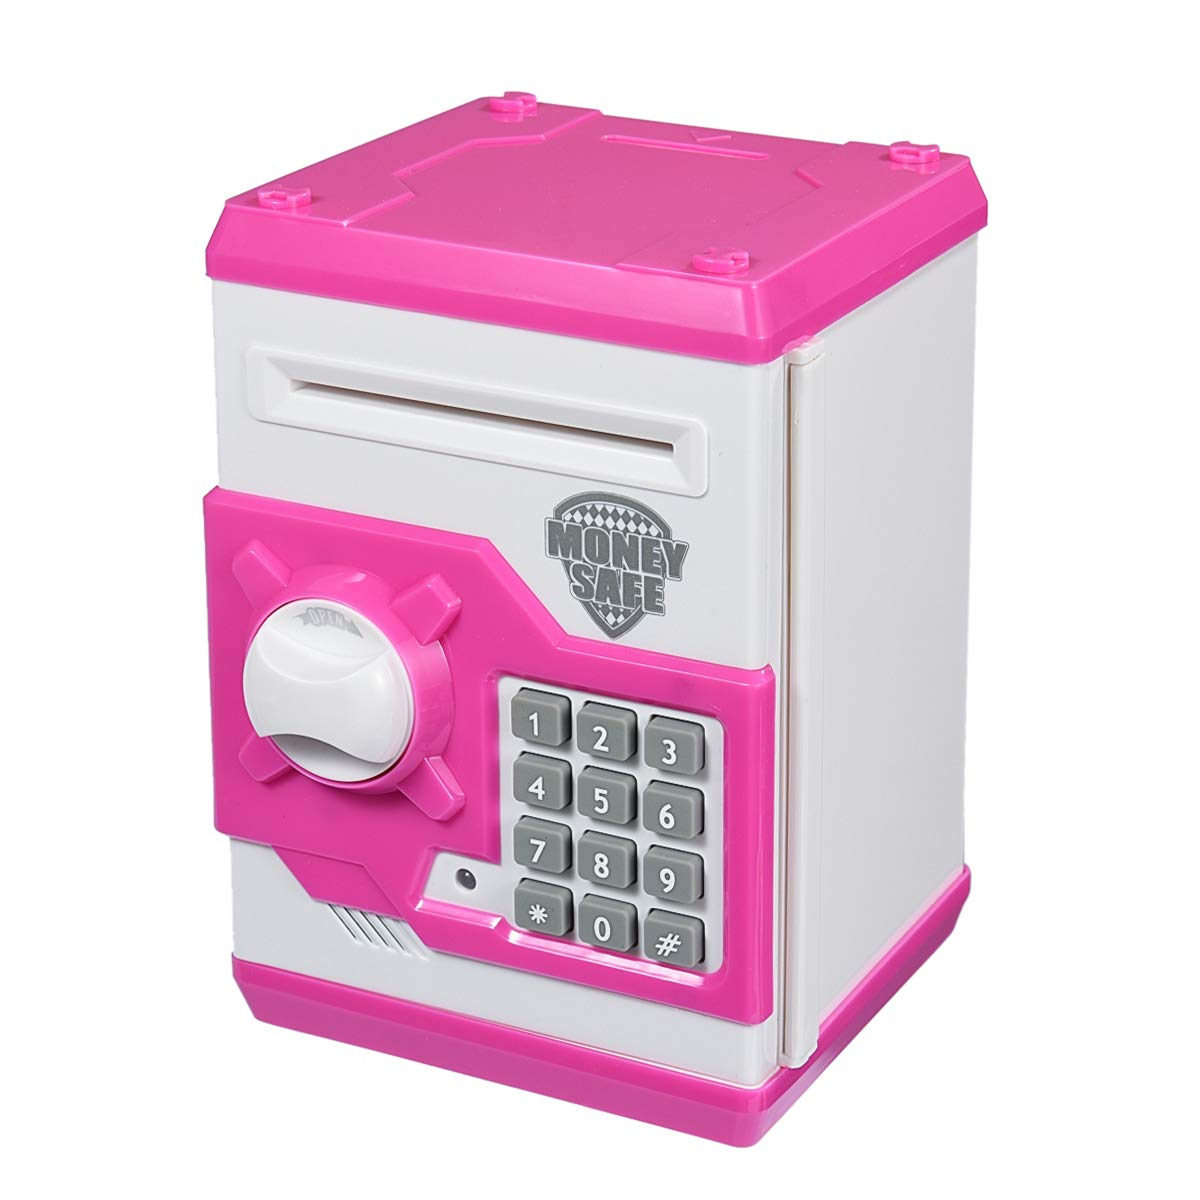 APUPPY Cartoon Password Piggy Bank Cash Coin CanElectronic Money BankBirthday Gifts Toy F